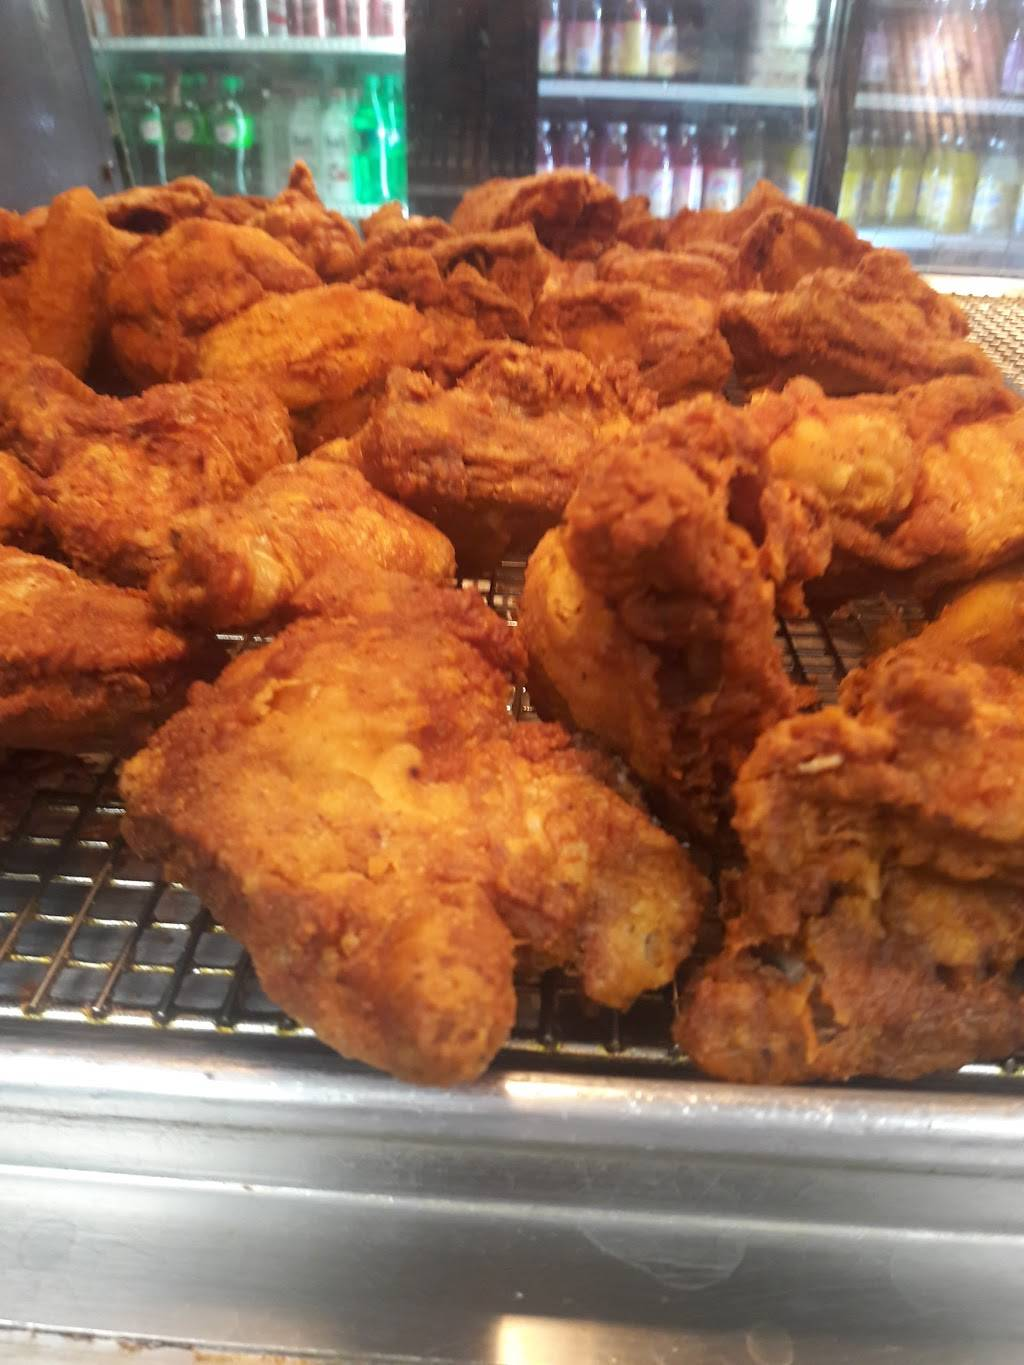 Gyro Loco & Prince Fried Chicken | restaurant | 11 Anderson Ave, Fairview, NJ 07022, USA | 2019454555 OR +1 201-945-4555